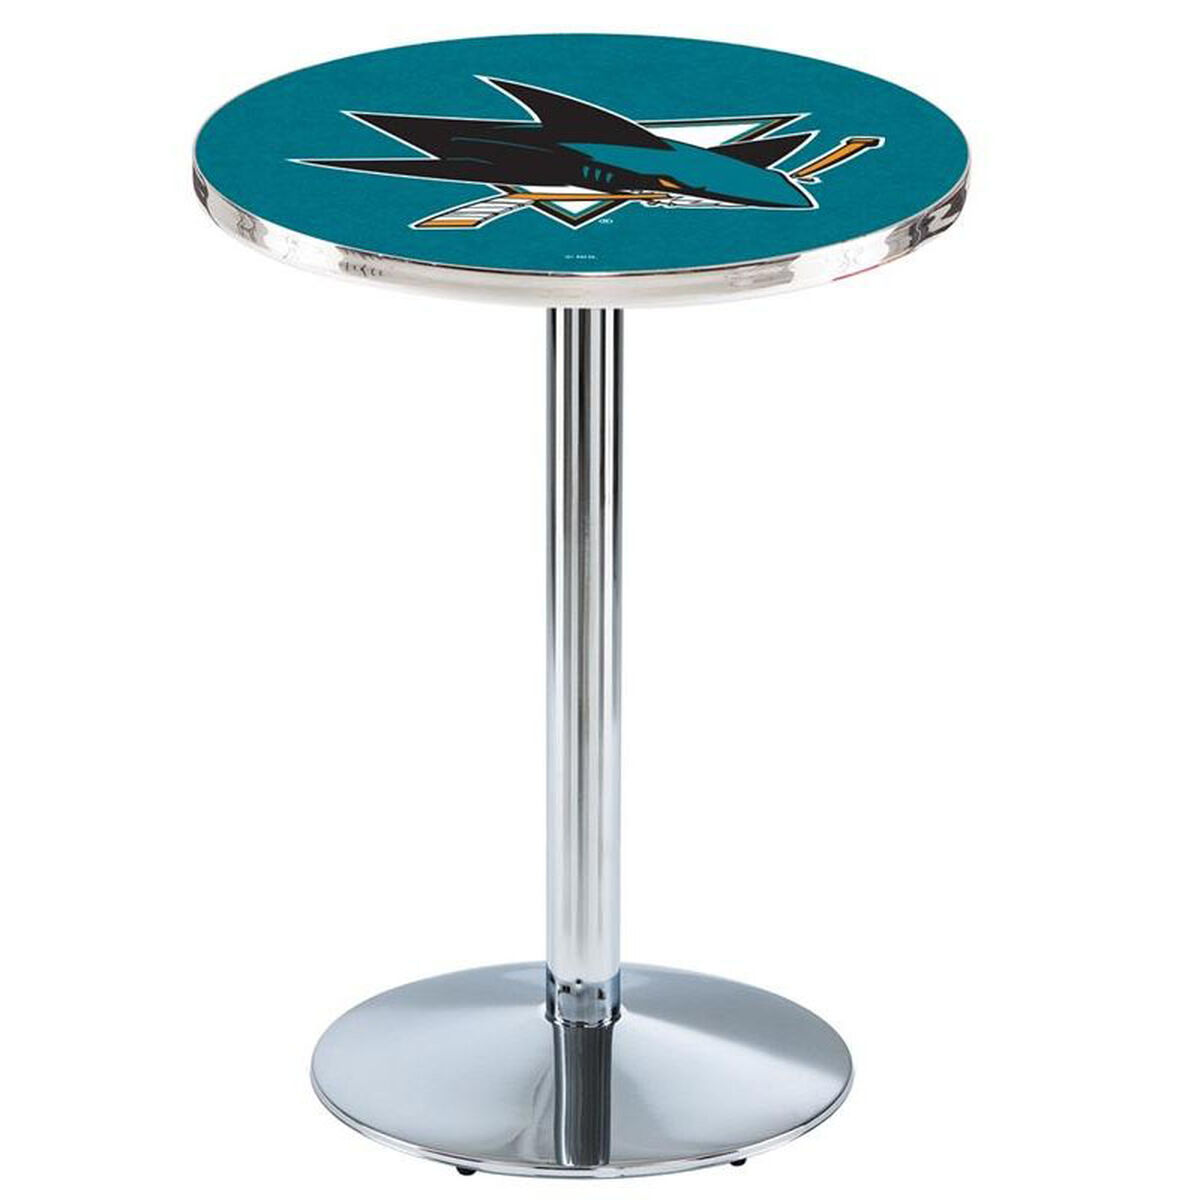 Nhl Chrome Finish Pub Table L214c42sjshar